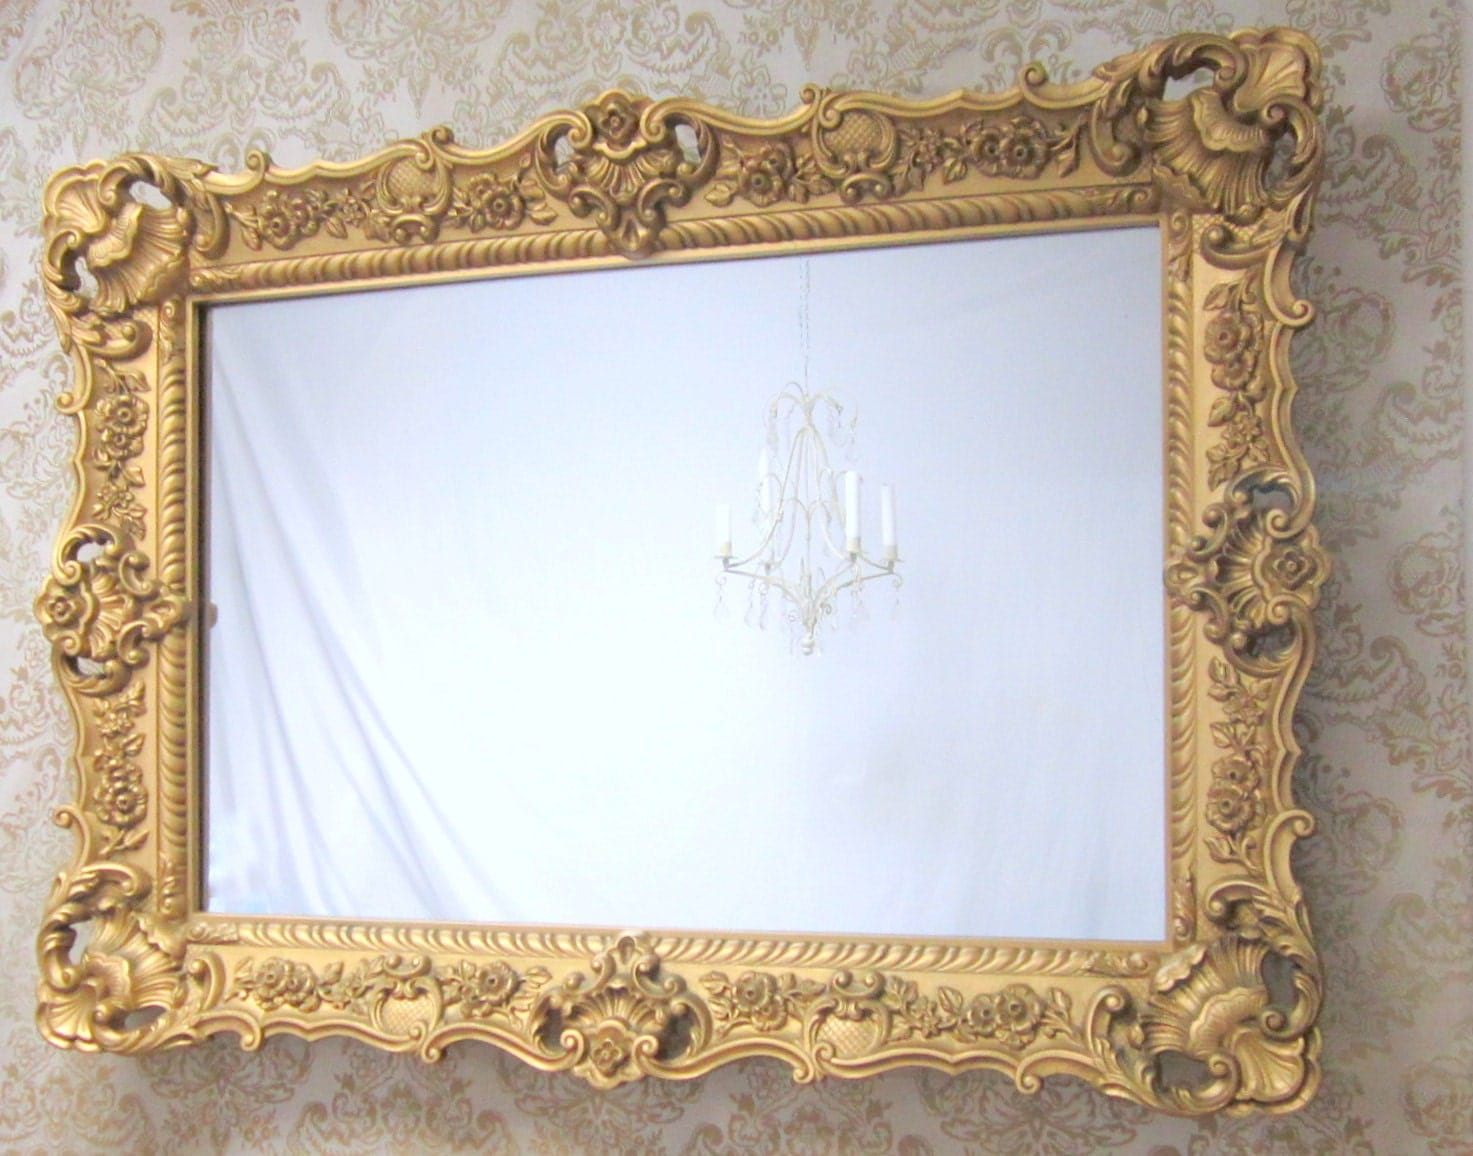 Hollywood regency mirrors for sale 45x33 large for Large wall mirrors for sale